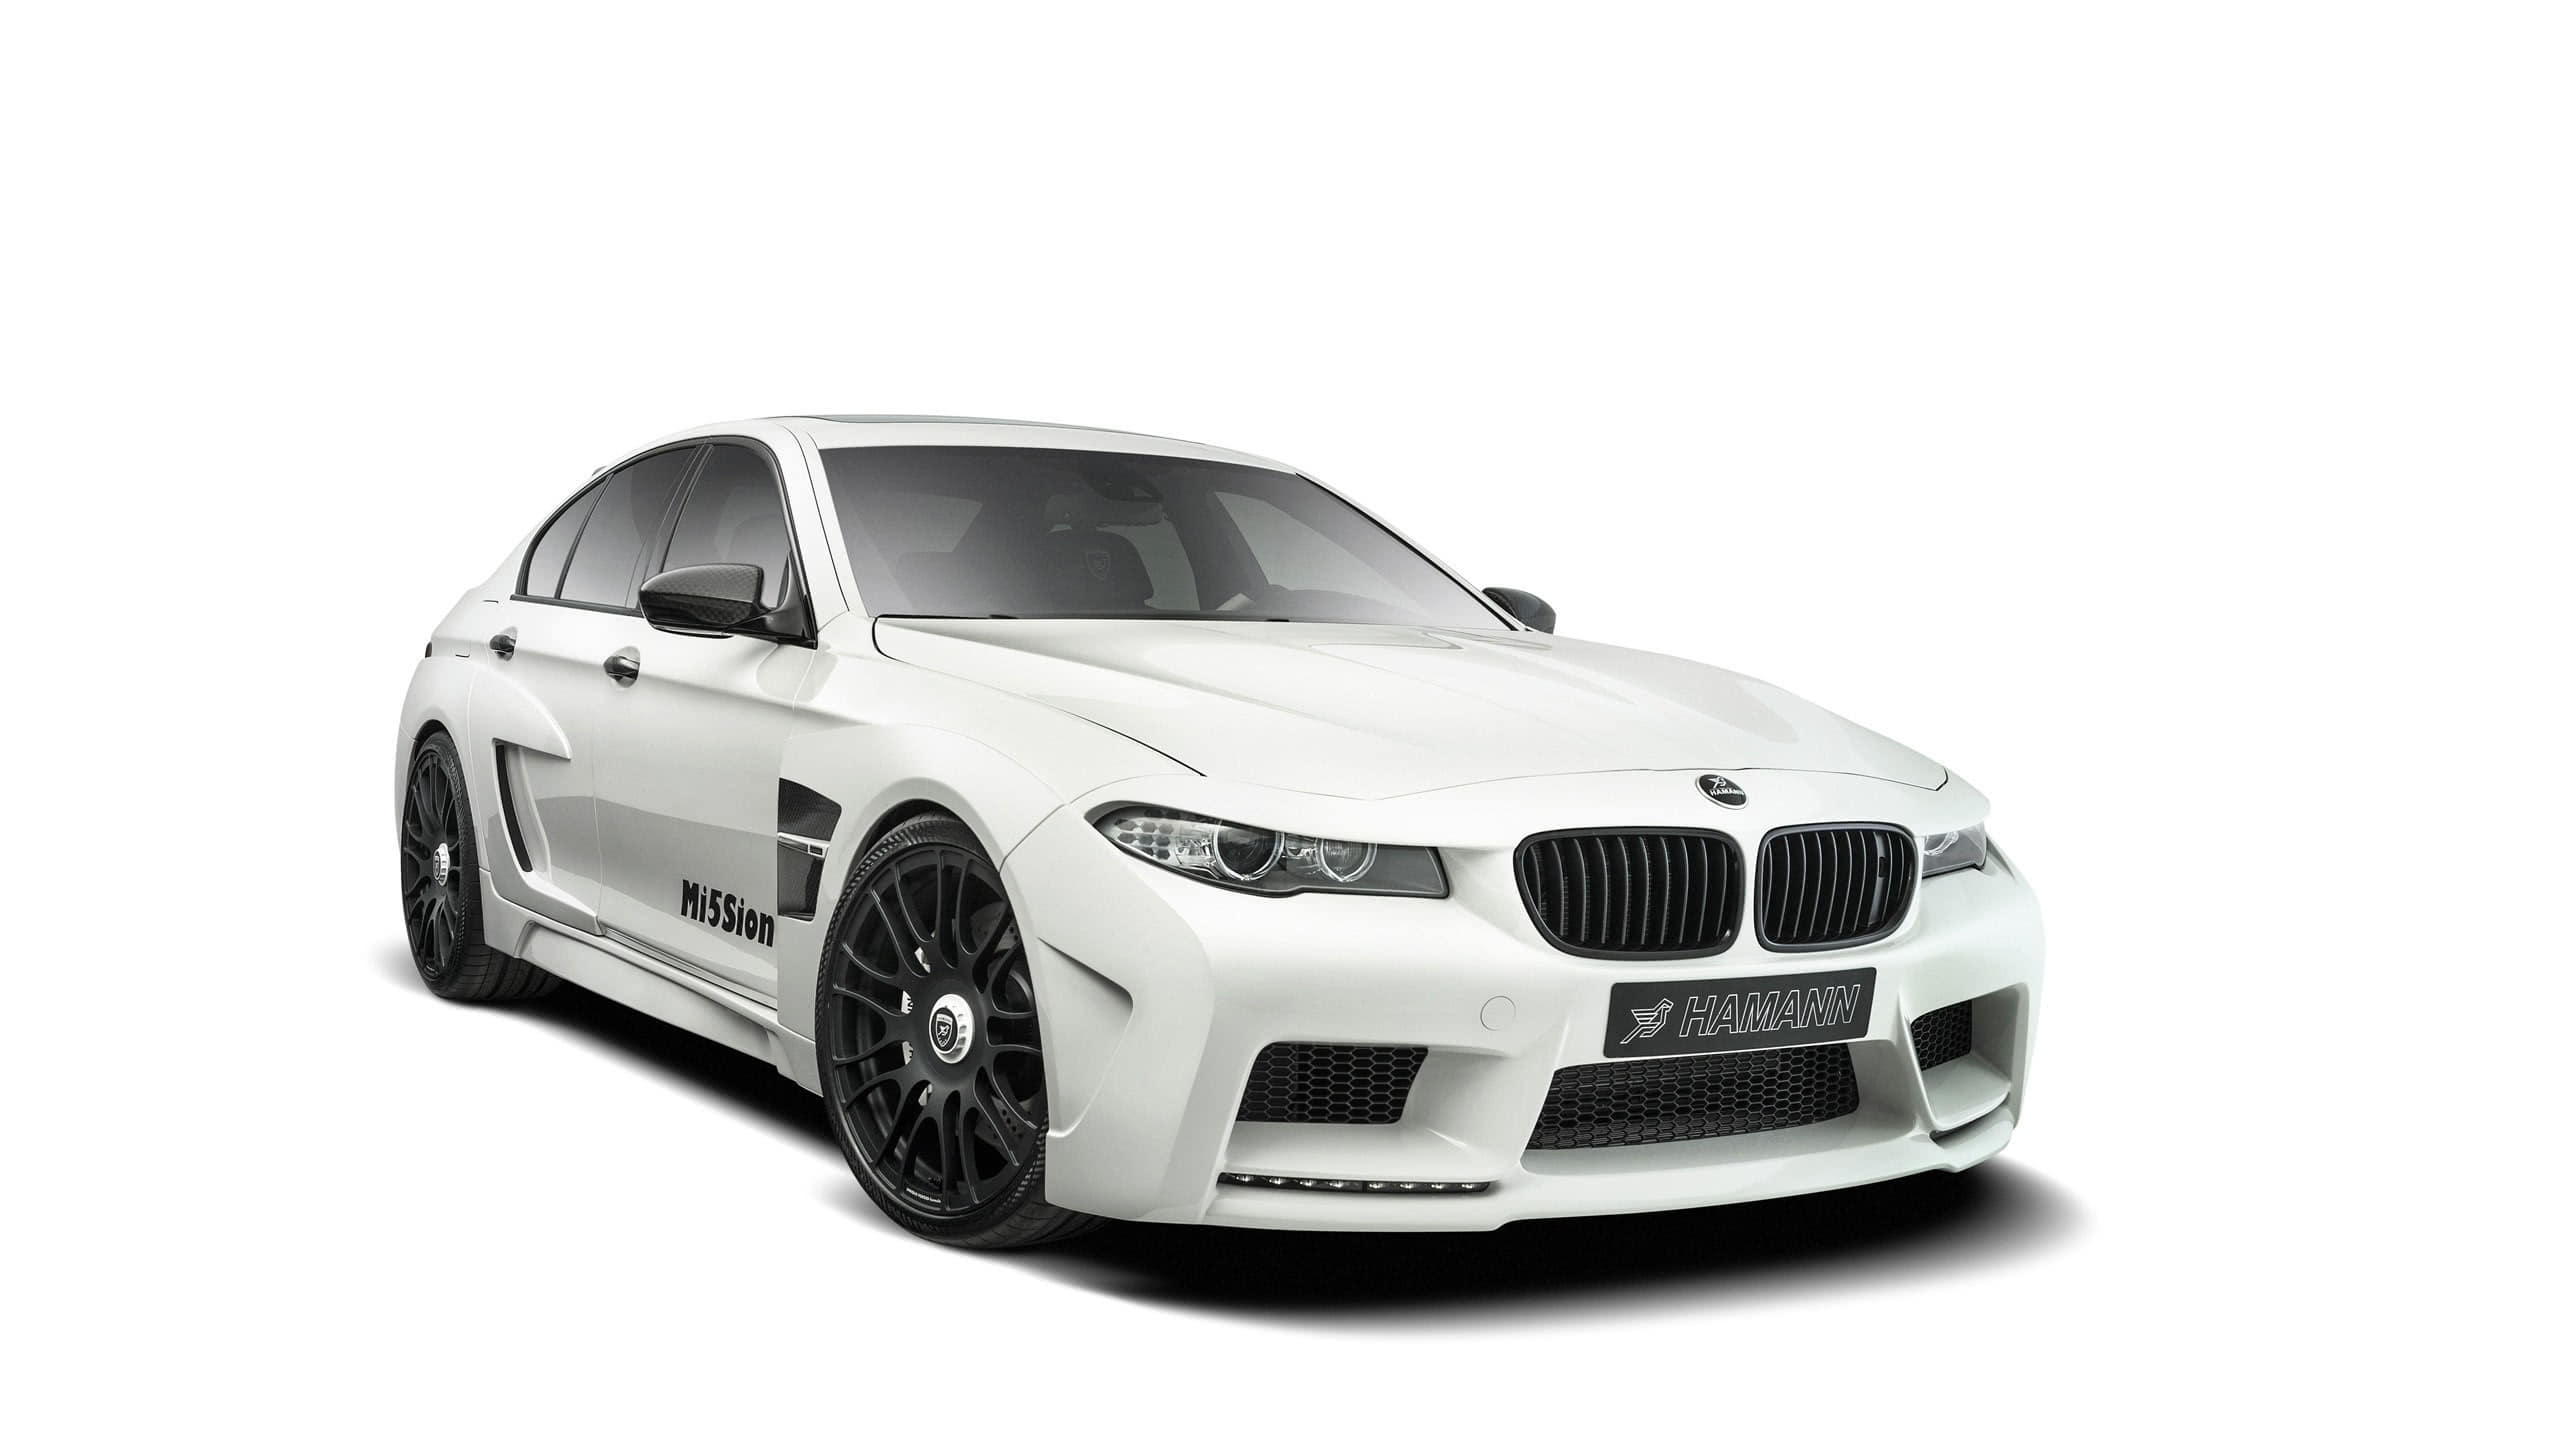 bmw m5 hamann mission wqhd 1440p wallpaper